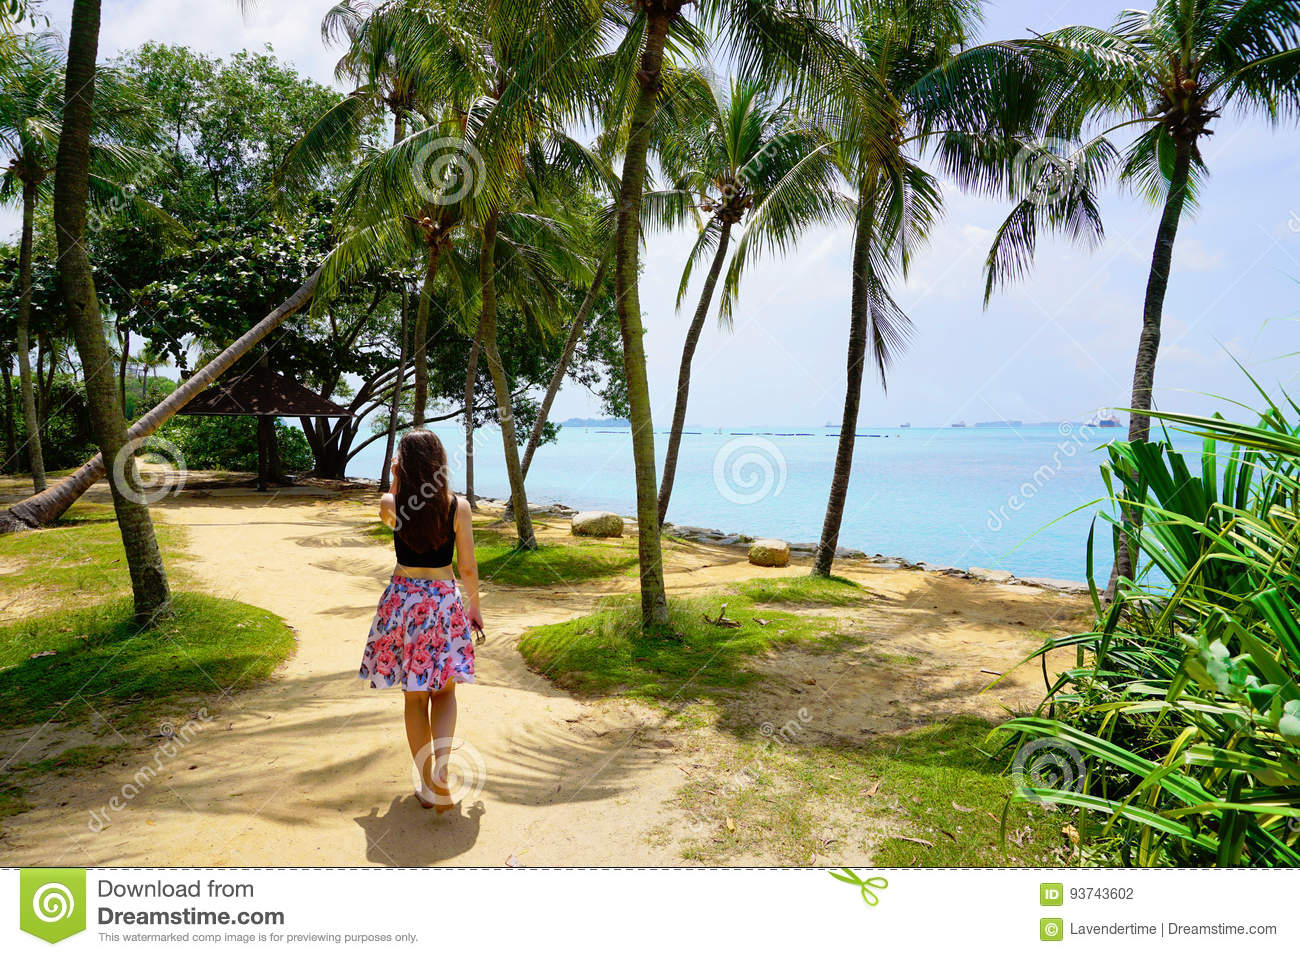 Palawan Beach Of Sentosa Island Stock Photo Image Of Relax